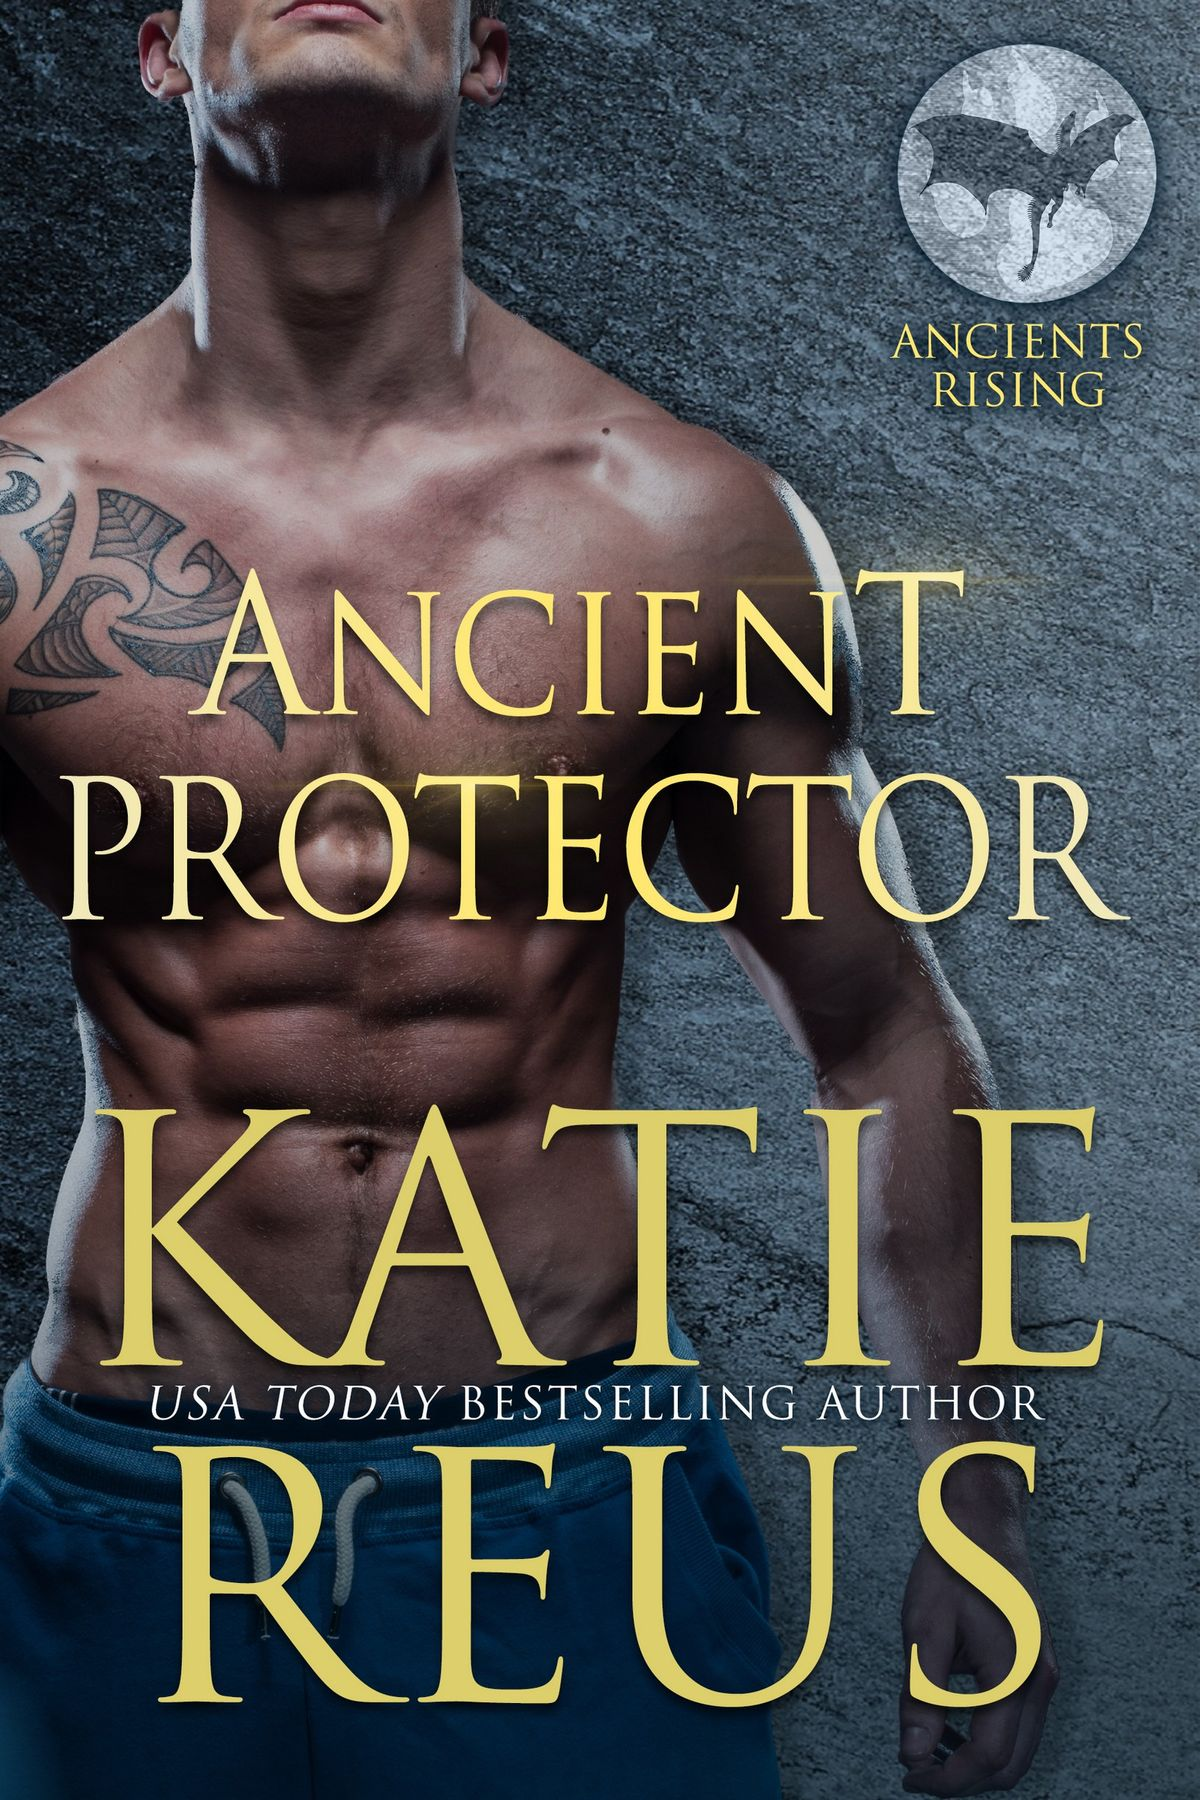 Ancient Protector by Katie Reus